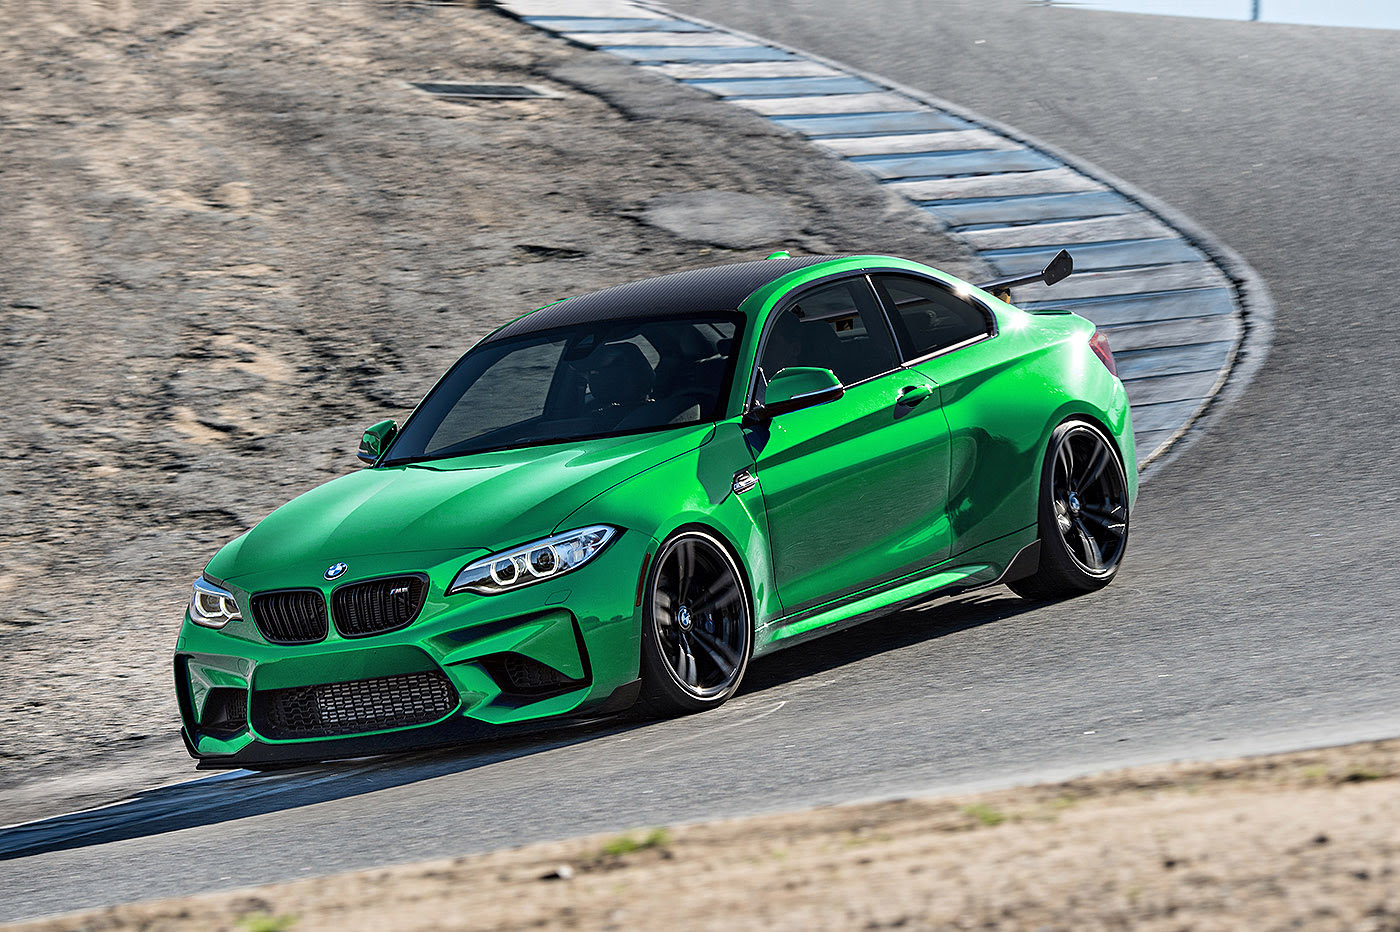 Expect The BMW M2 CSL To Pack 400 HP